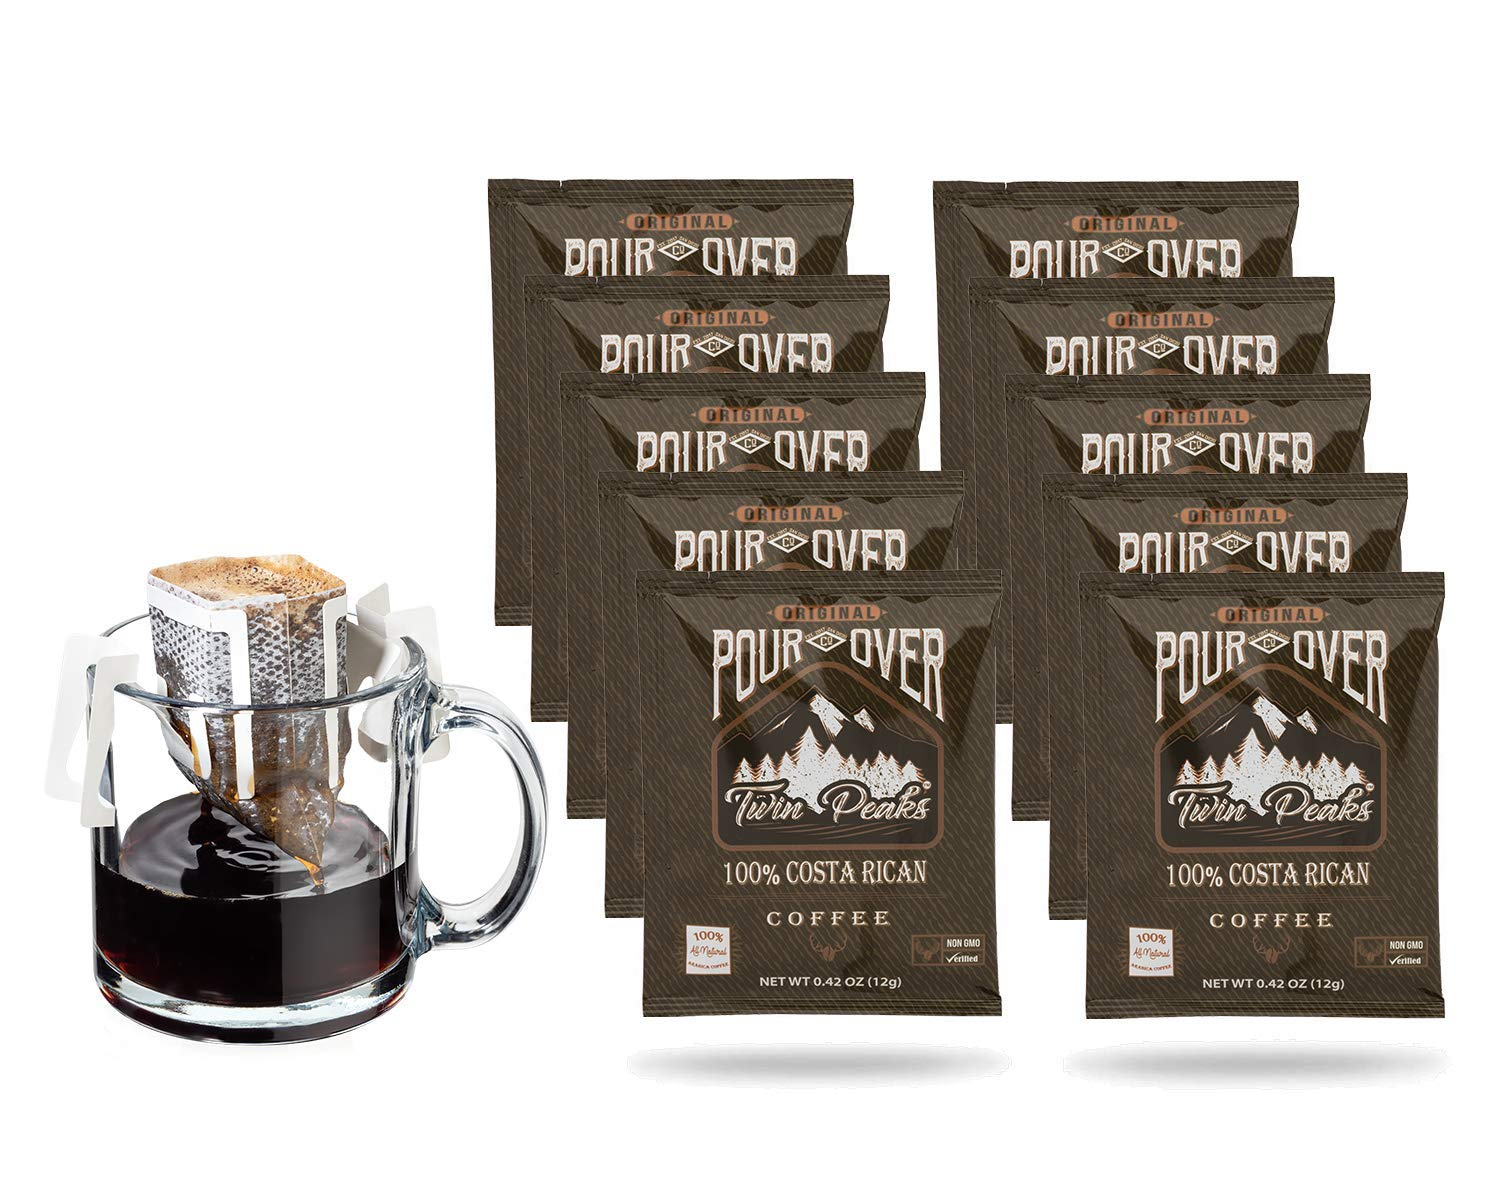 Twin Peaks 100% Costa Rican Single-Serve Pour Over Coffee Pouches, 10 Count Box